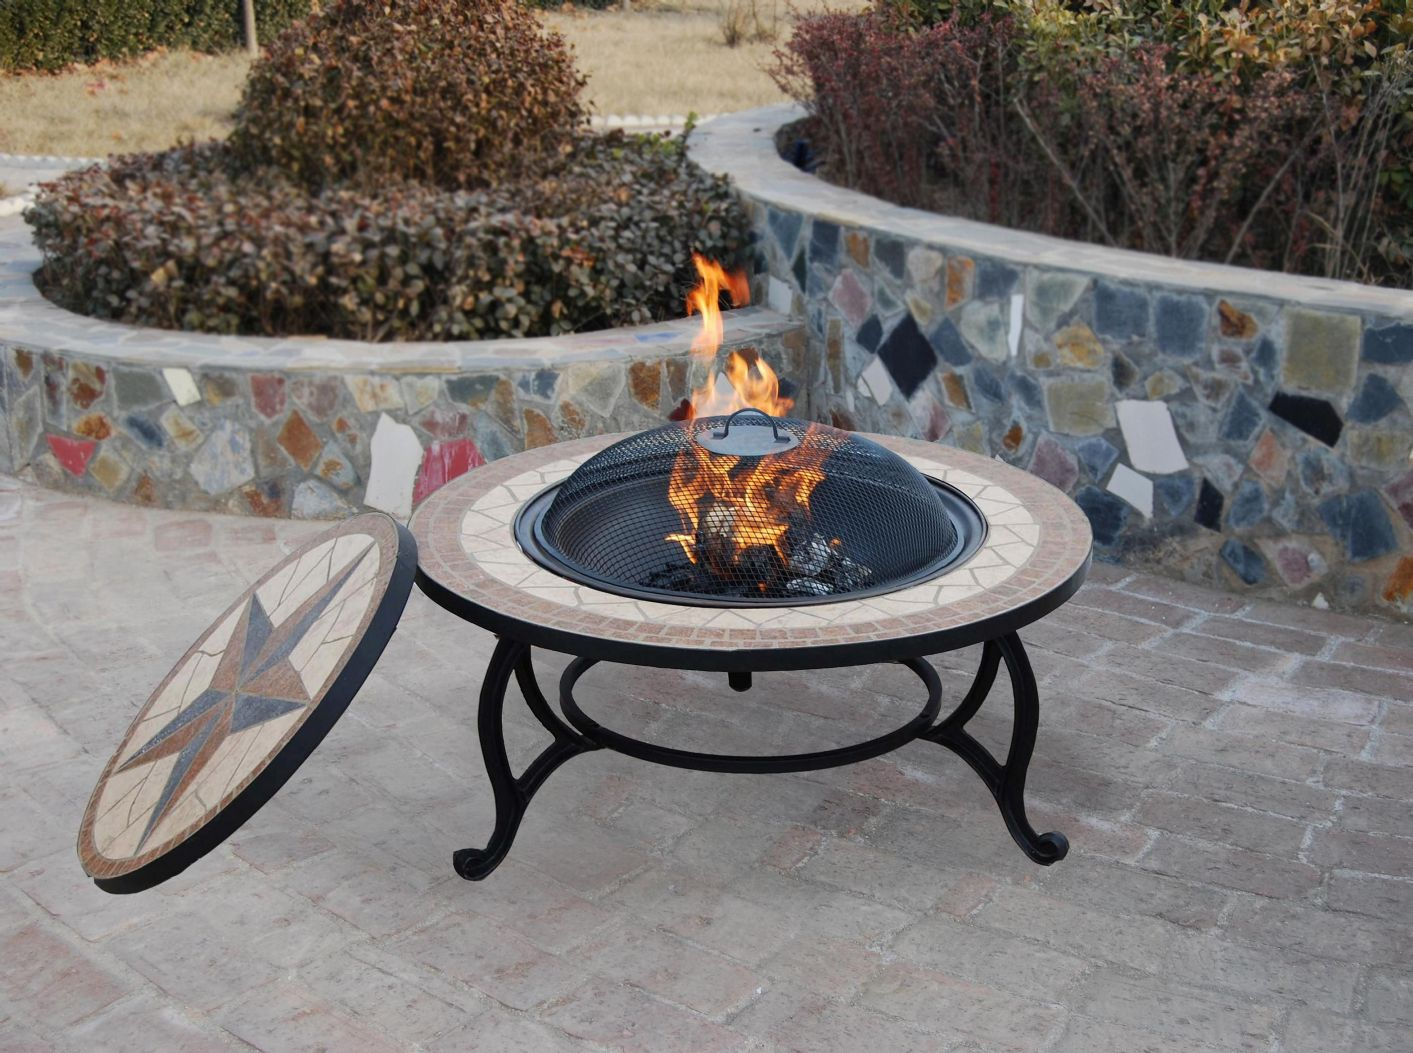 Tabletop Fire Pit Covers 124sayedbrothersnl in size 1413 X 1053